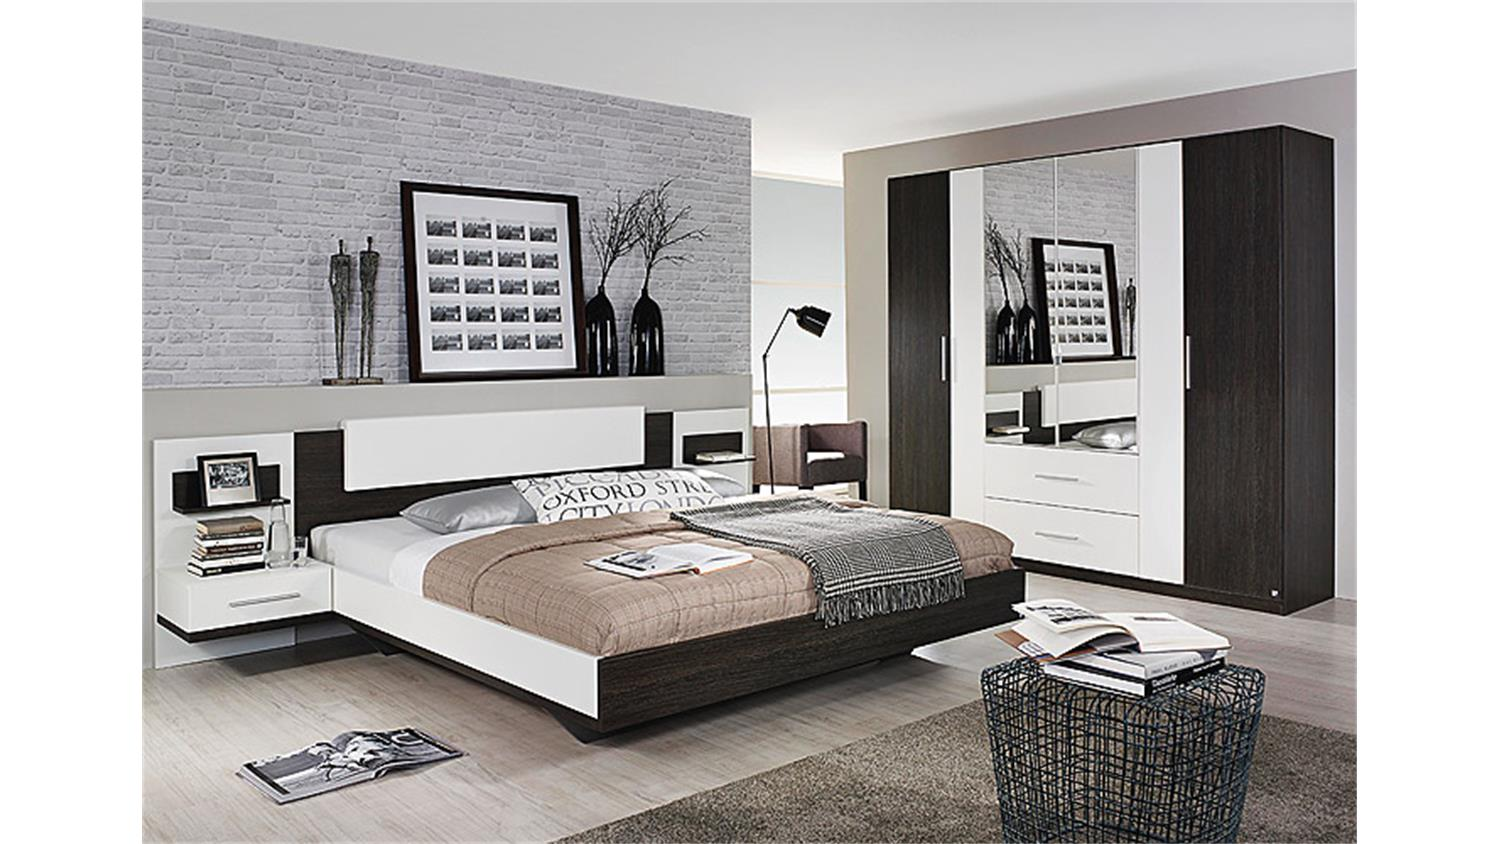 wohnideen wohnzimmer farbgestaltung. Black Bedroom Furniture Sets. Home Design Ideas